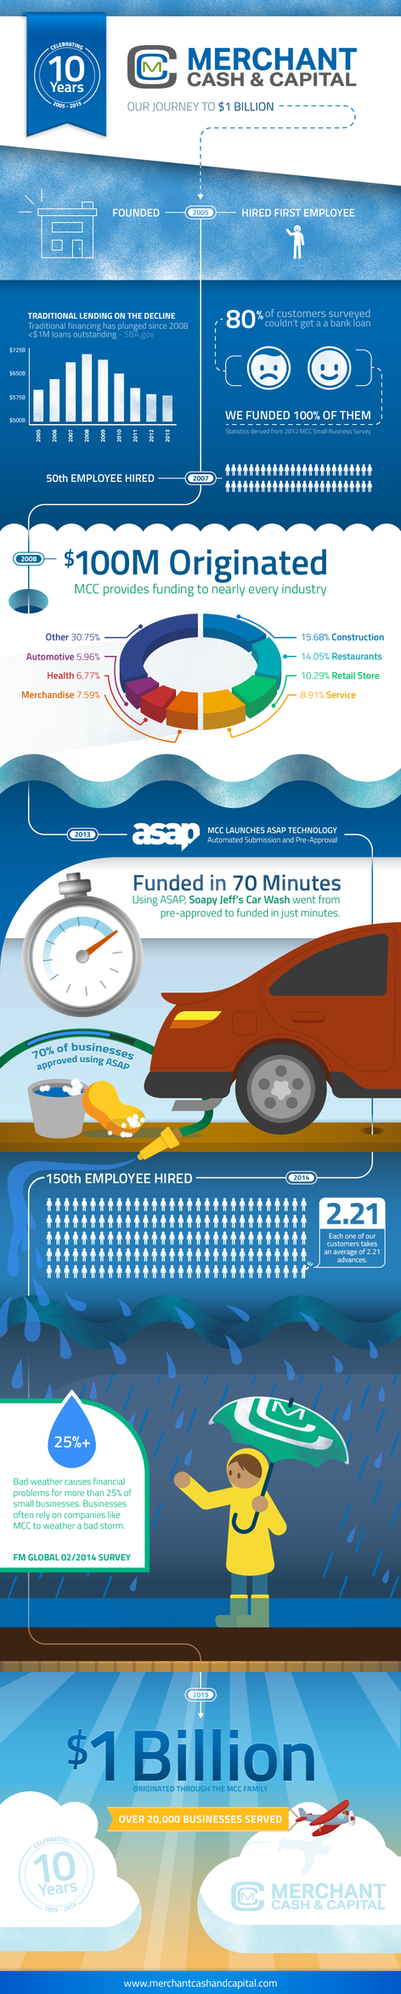 Merchant Cash and Capital Infographic by Bonvallet